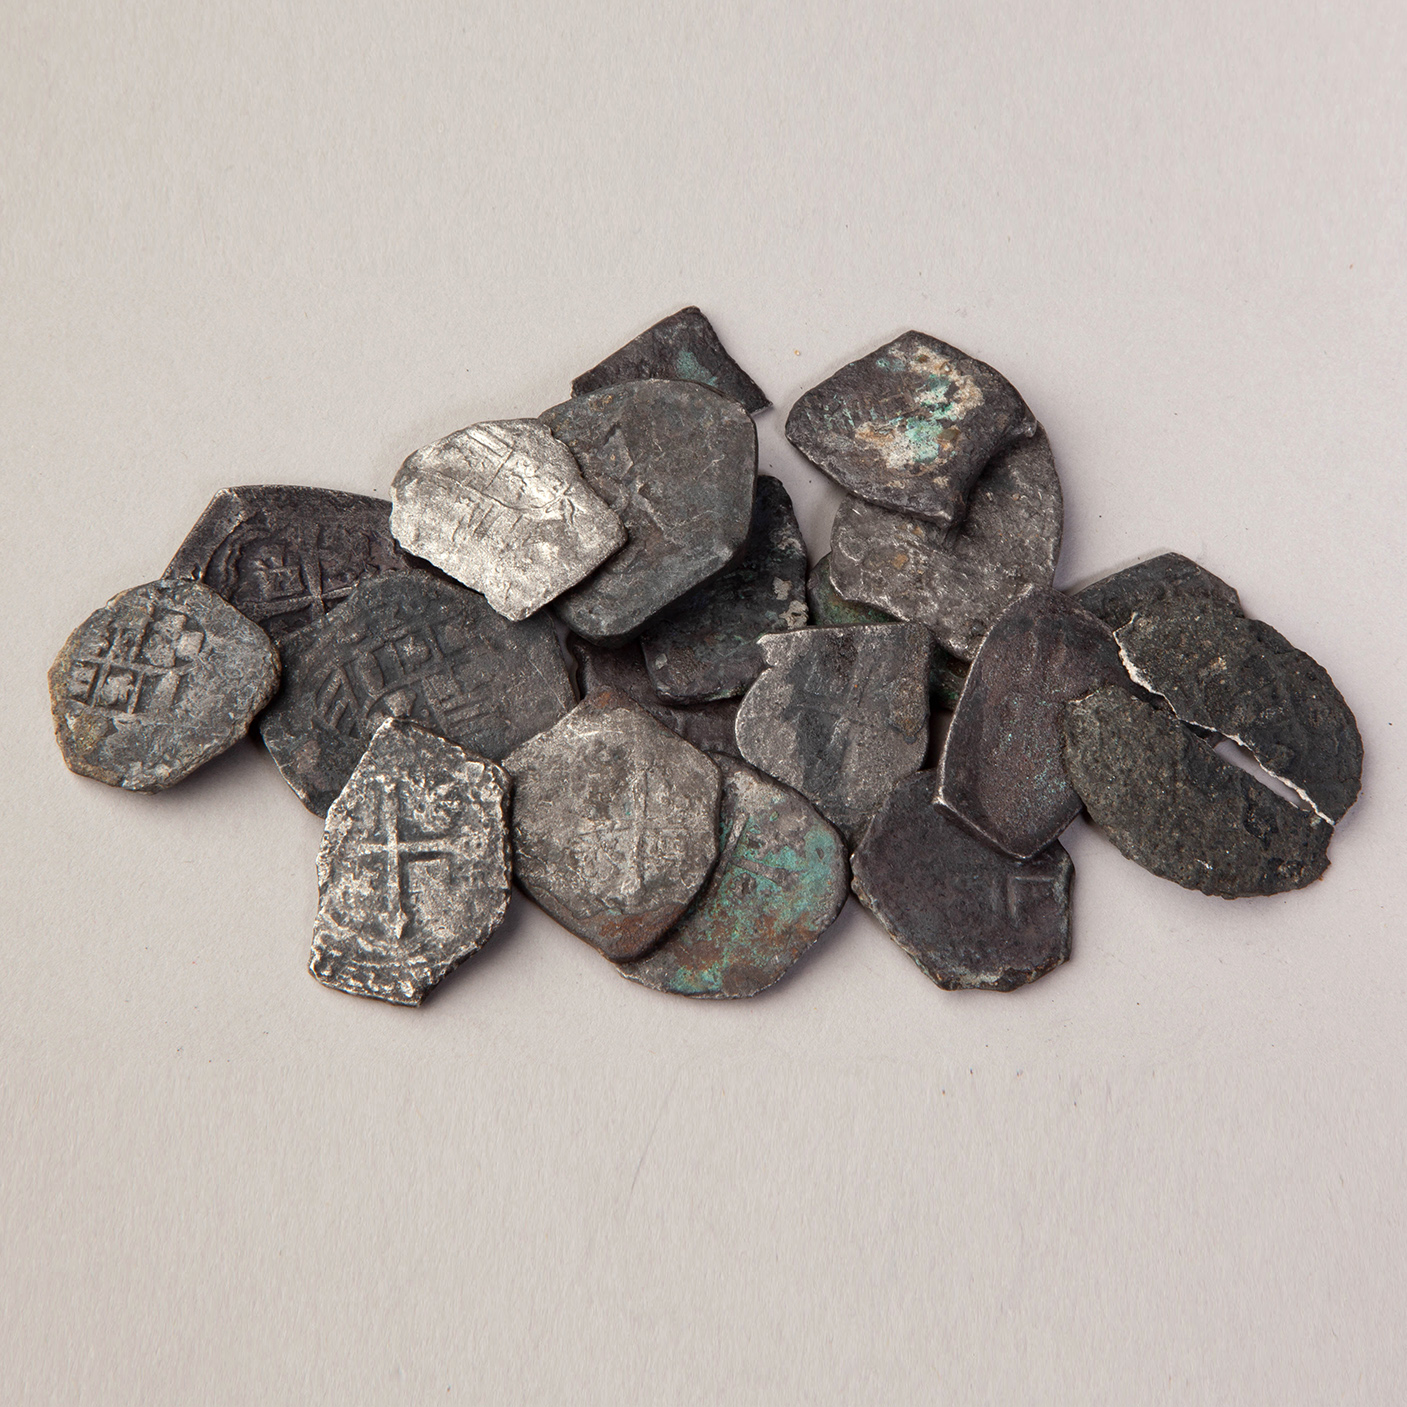 21 PIECES OF EIGHT